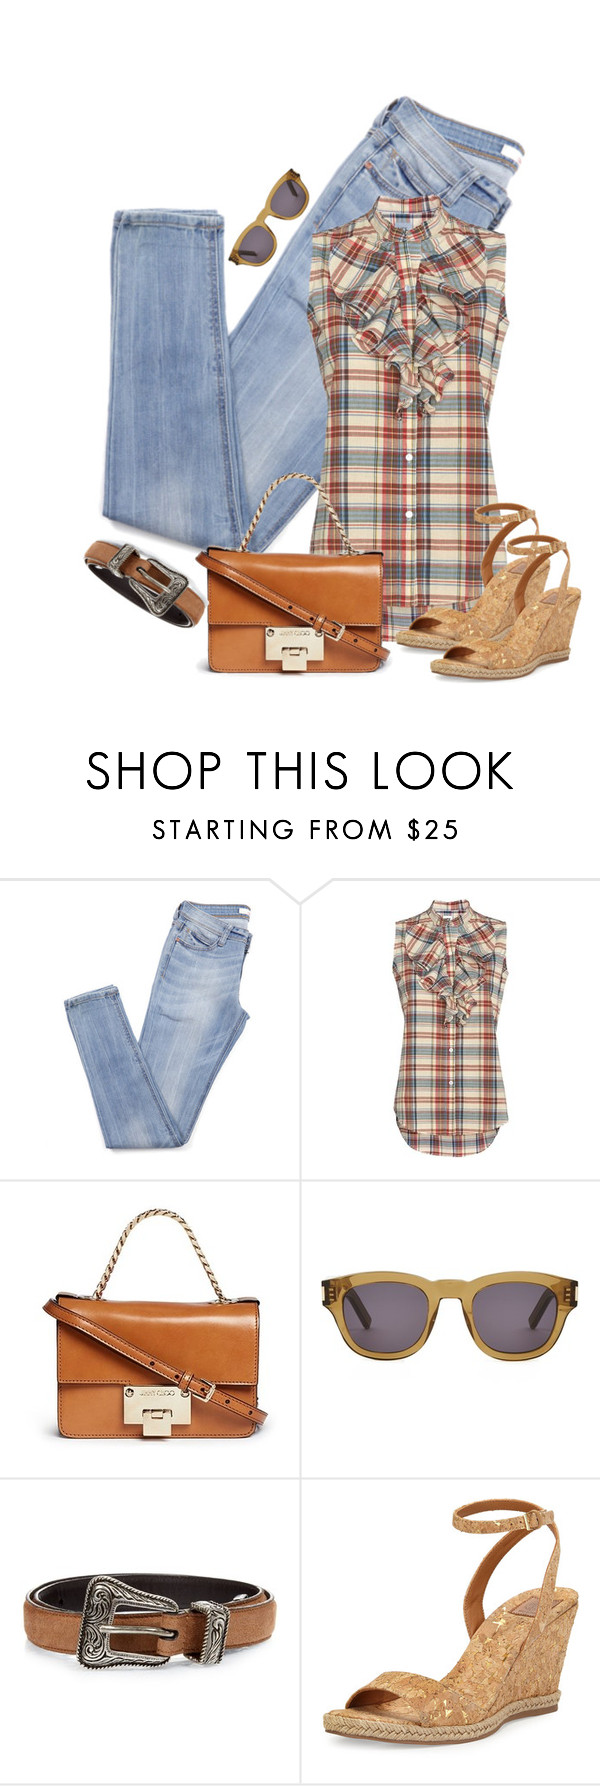 """""""She Does What She Wants to Do"""" by jacque-reid ❤ liked on Polyvore featuring NSF, Jimmy Choo, Yves Saint Laurent, Tory Burch, ToryBurch, jimmychoo, saintlaurent, NiemanMarcus and intermixonline"""